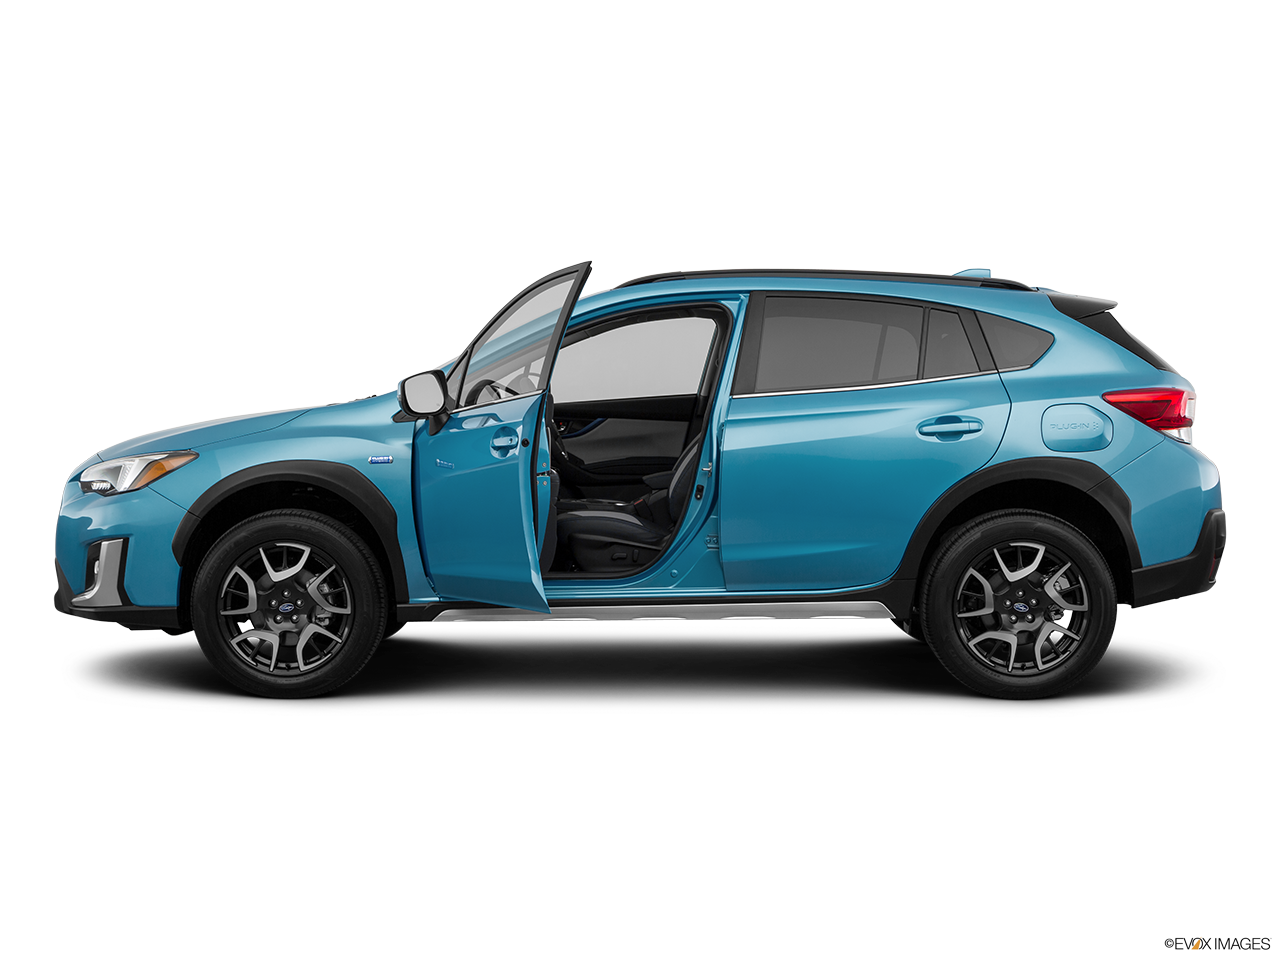 Side view of the Subaru Crosstrek Hybrid